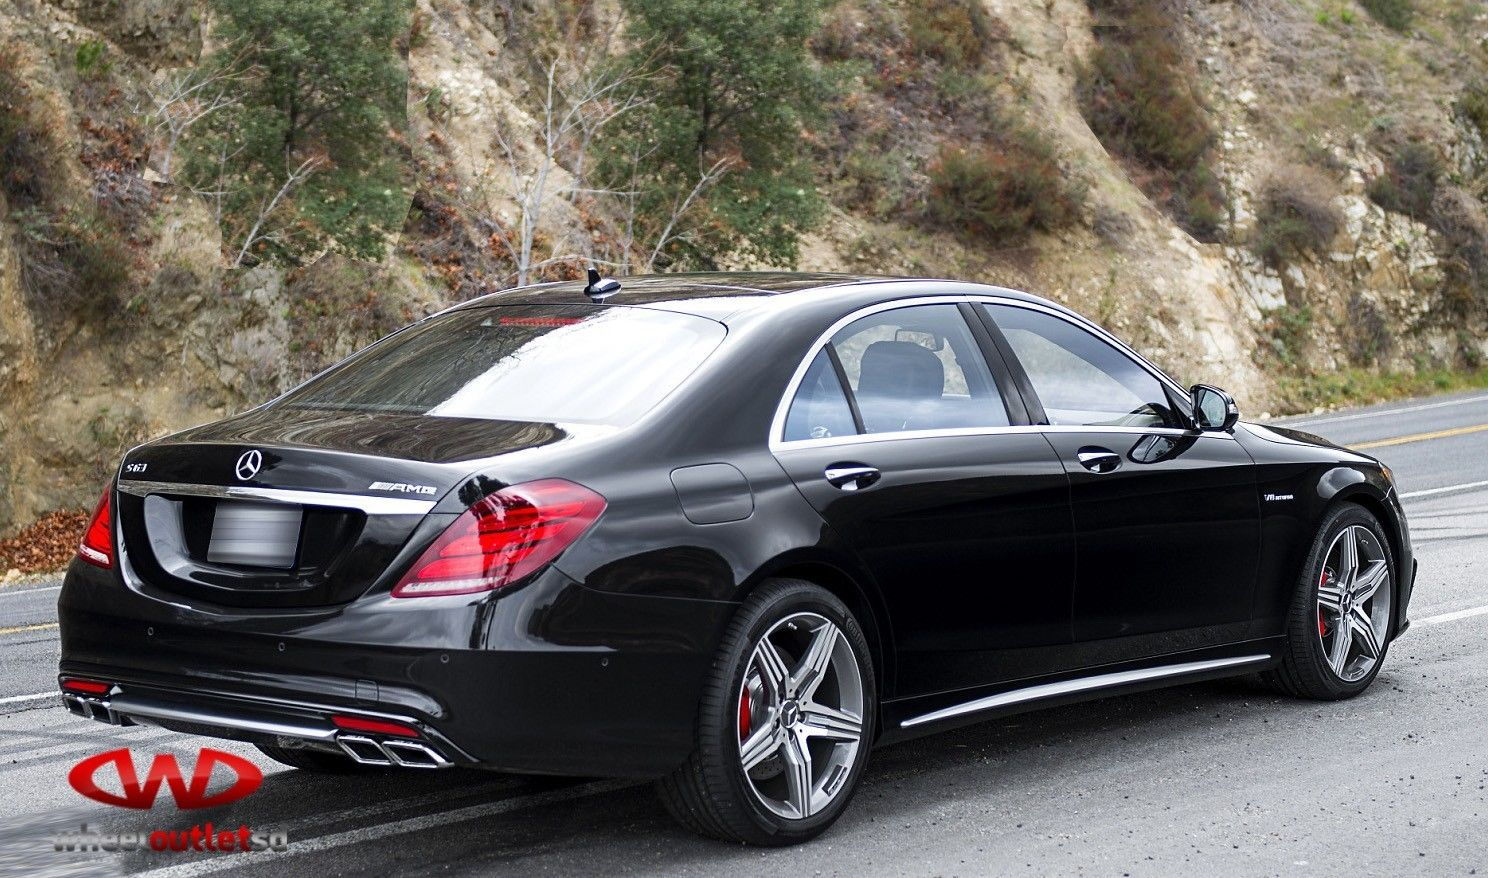 Buy new 22 inch or 20 inch reps forums for How much is a 2014 mercedes benz s550